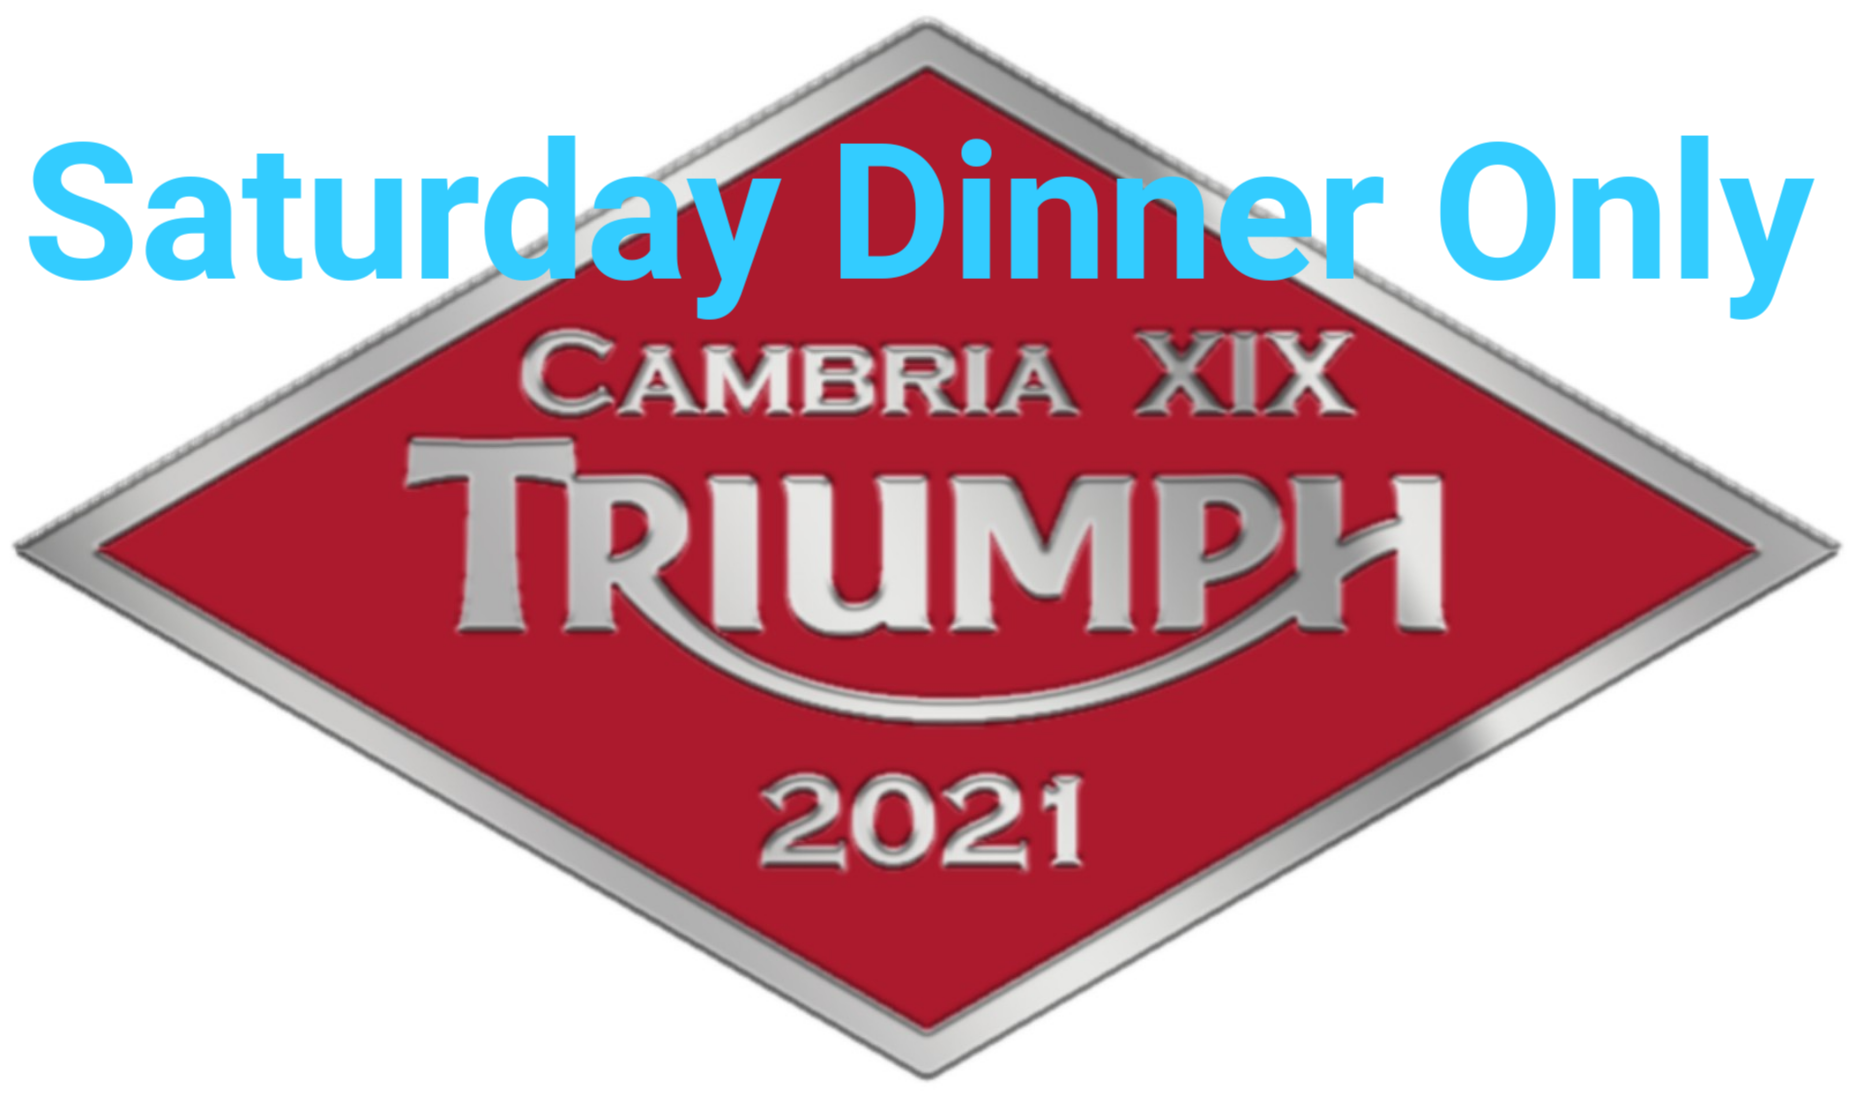 2021 Rally Registration - SATURDAY DINNER ONLY